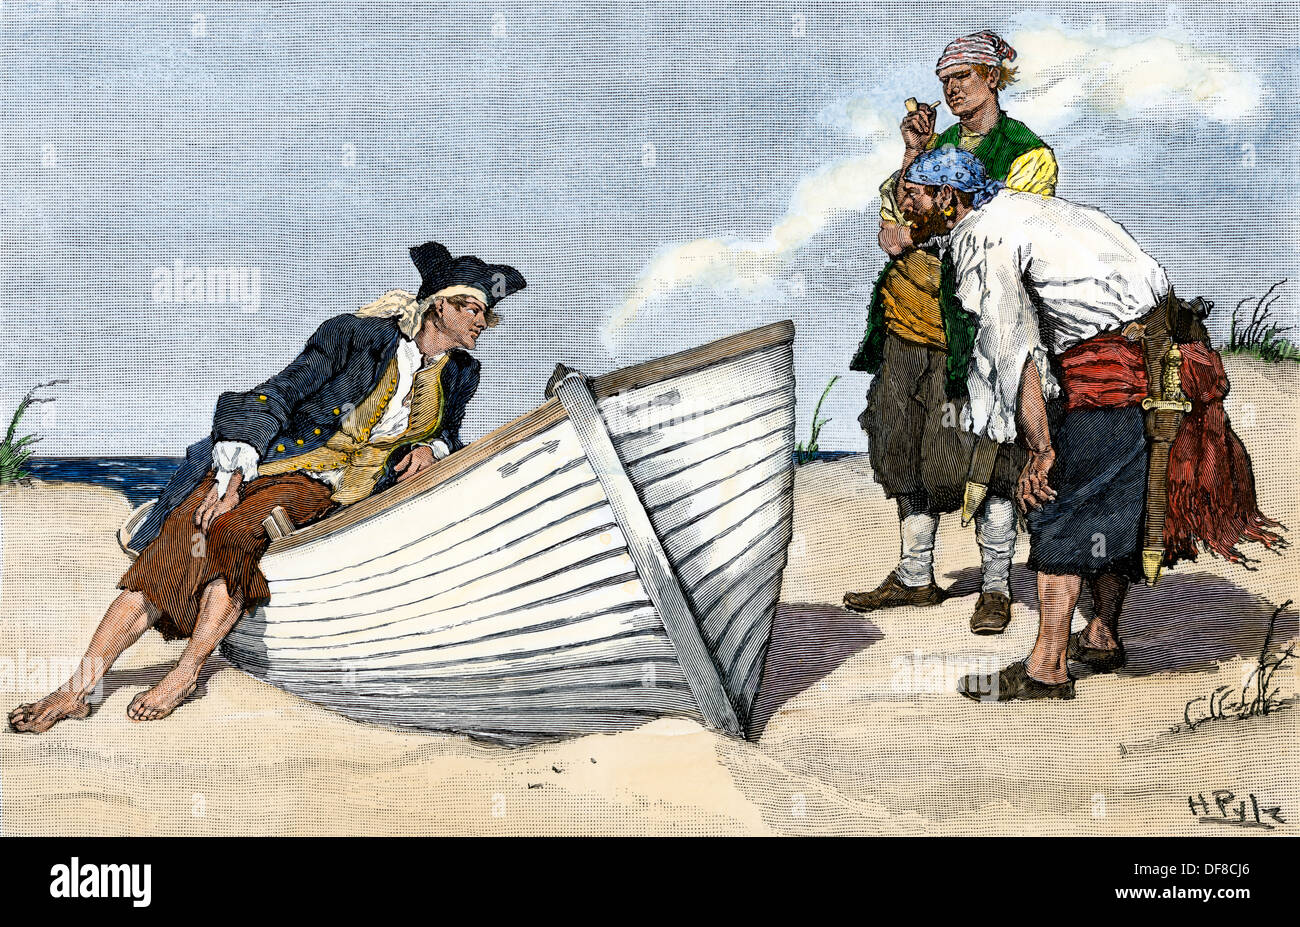 Pirates around a rowboat on an island. Hand-colored woodcut of a Howard Pyle illustration - Stock Image